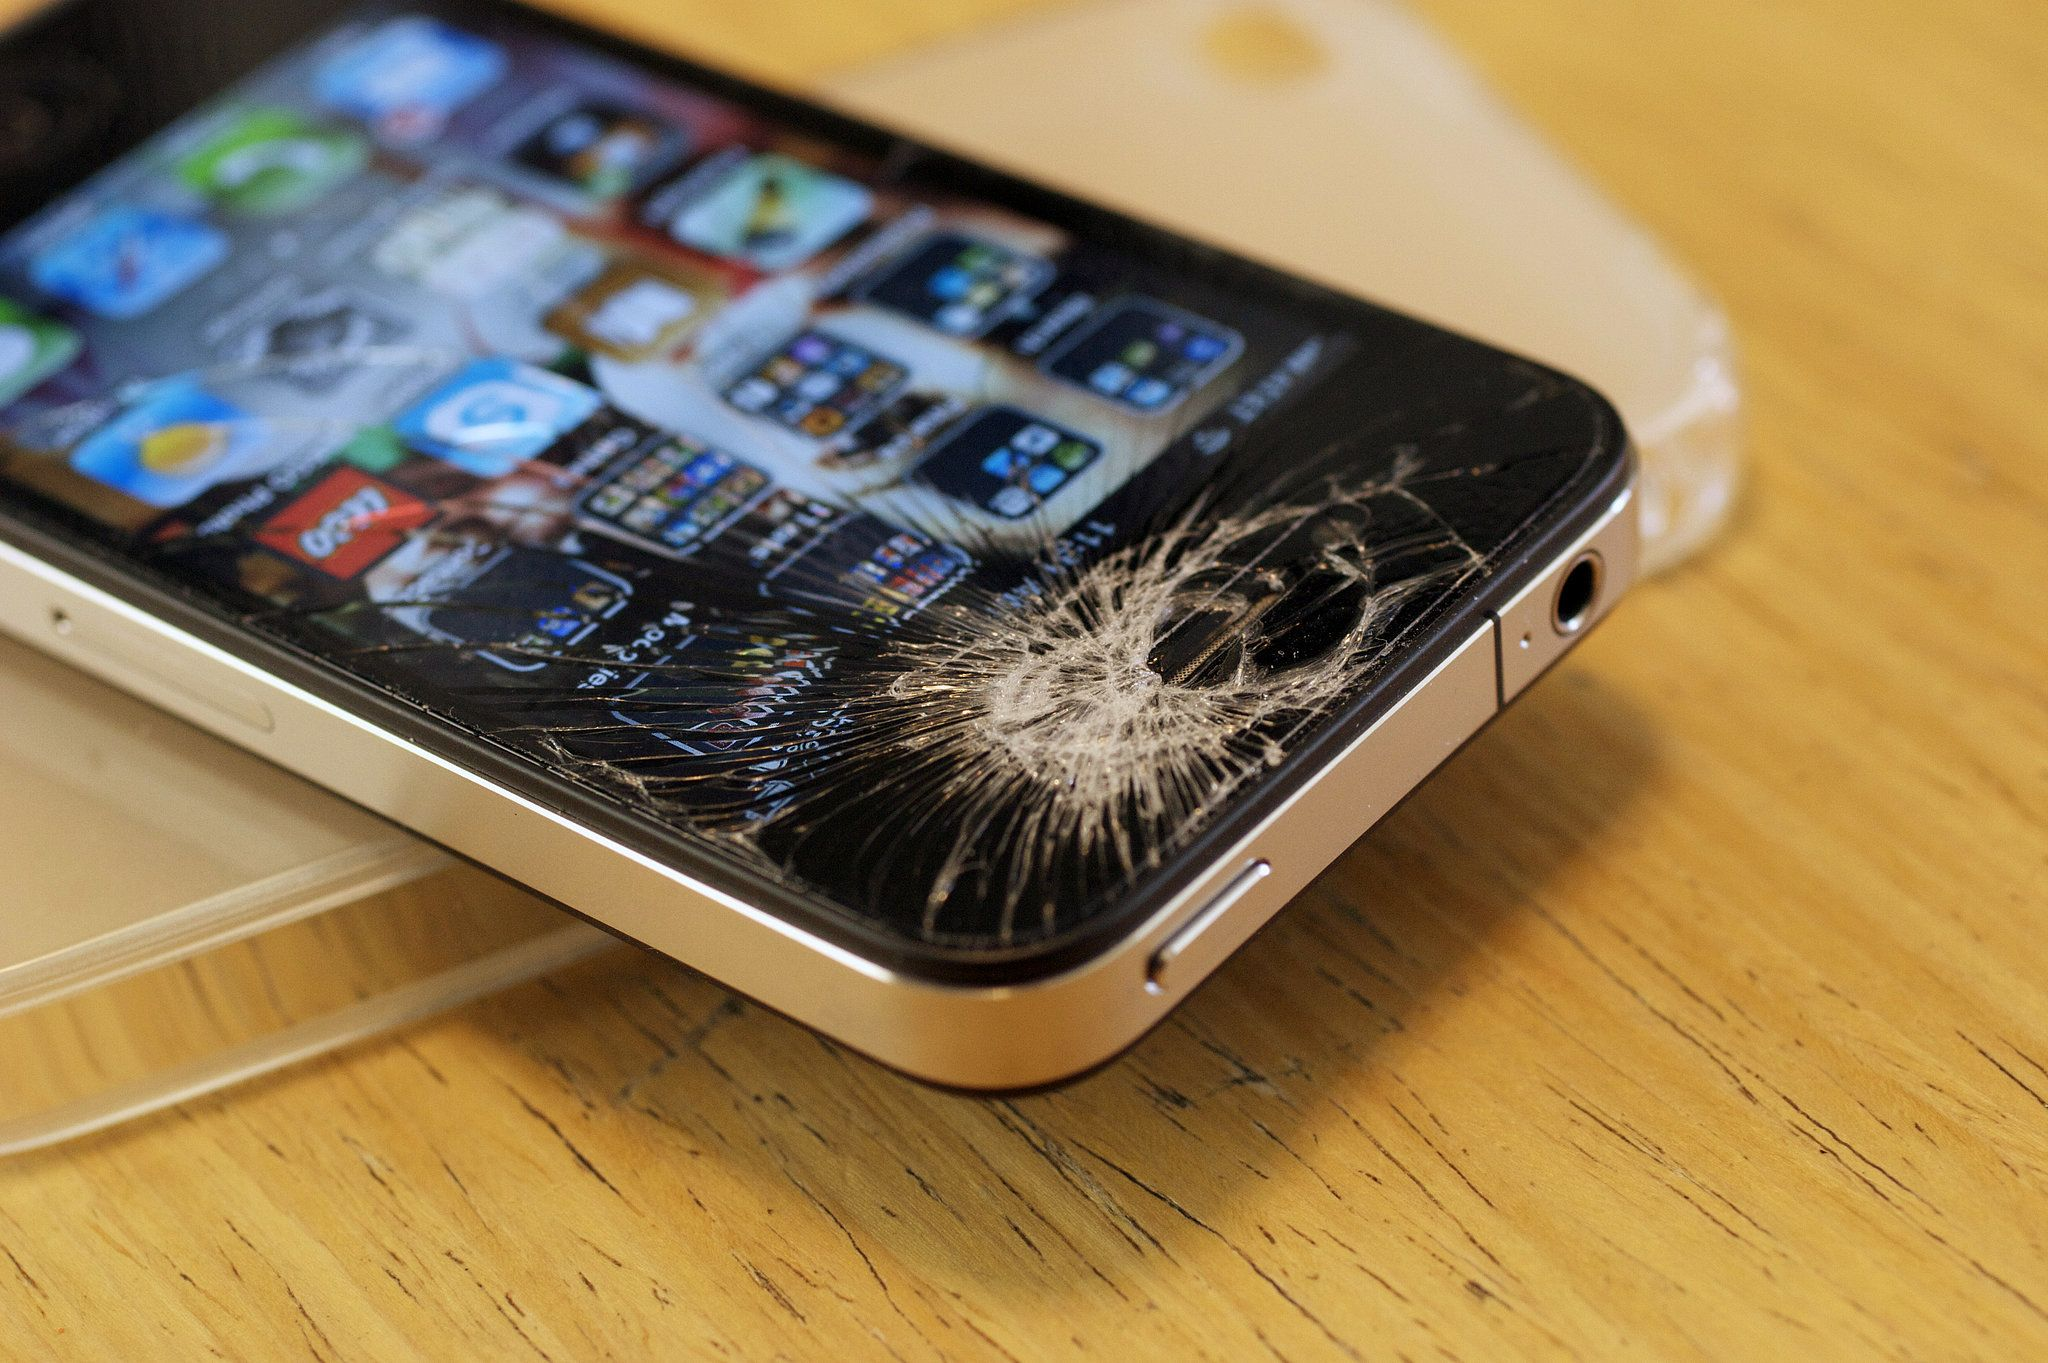 Apple Has a New Solution For Your Cracked iPhone | Iphone repair, Iphone